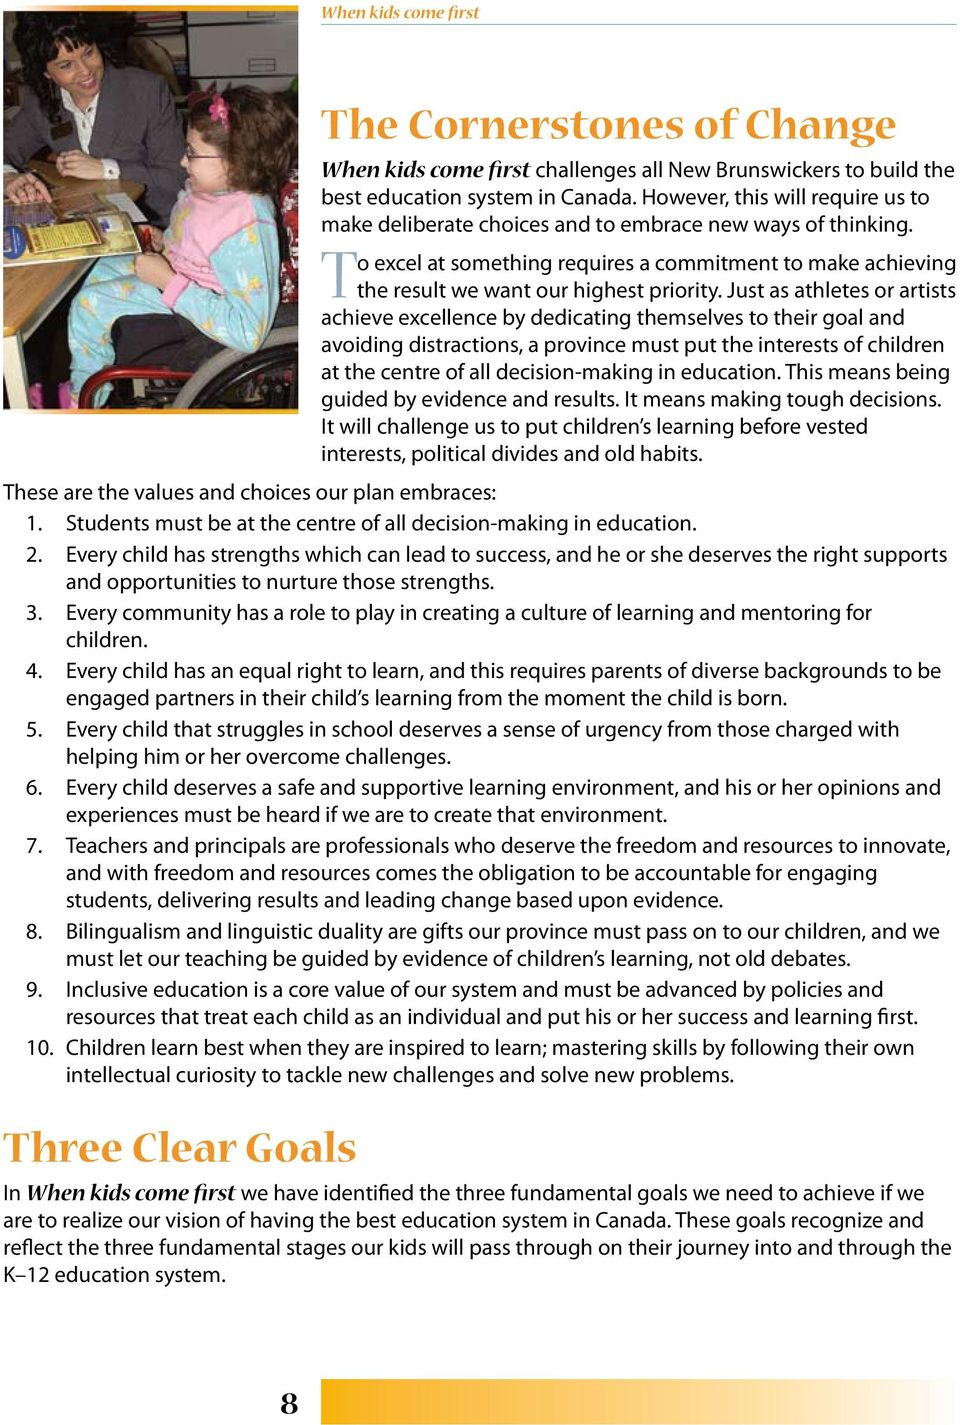 Just as athletes or artists achieve excellence by dedicating themselves to their goal and avoiding distractions, a province must put the interests of children at the centre of all decision-making in